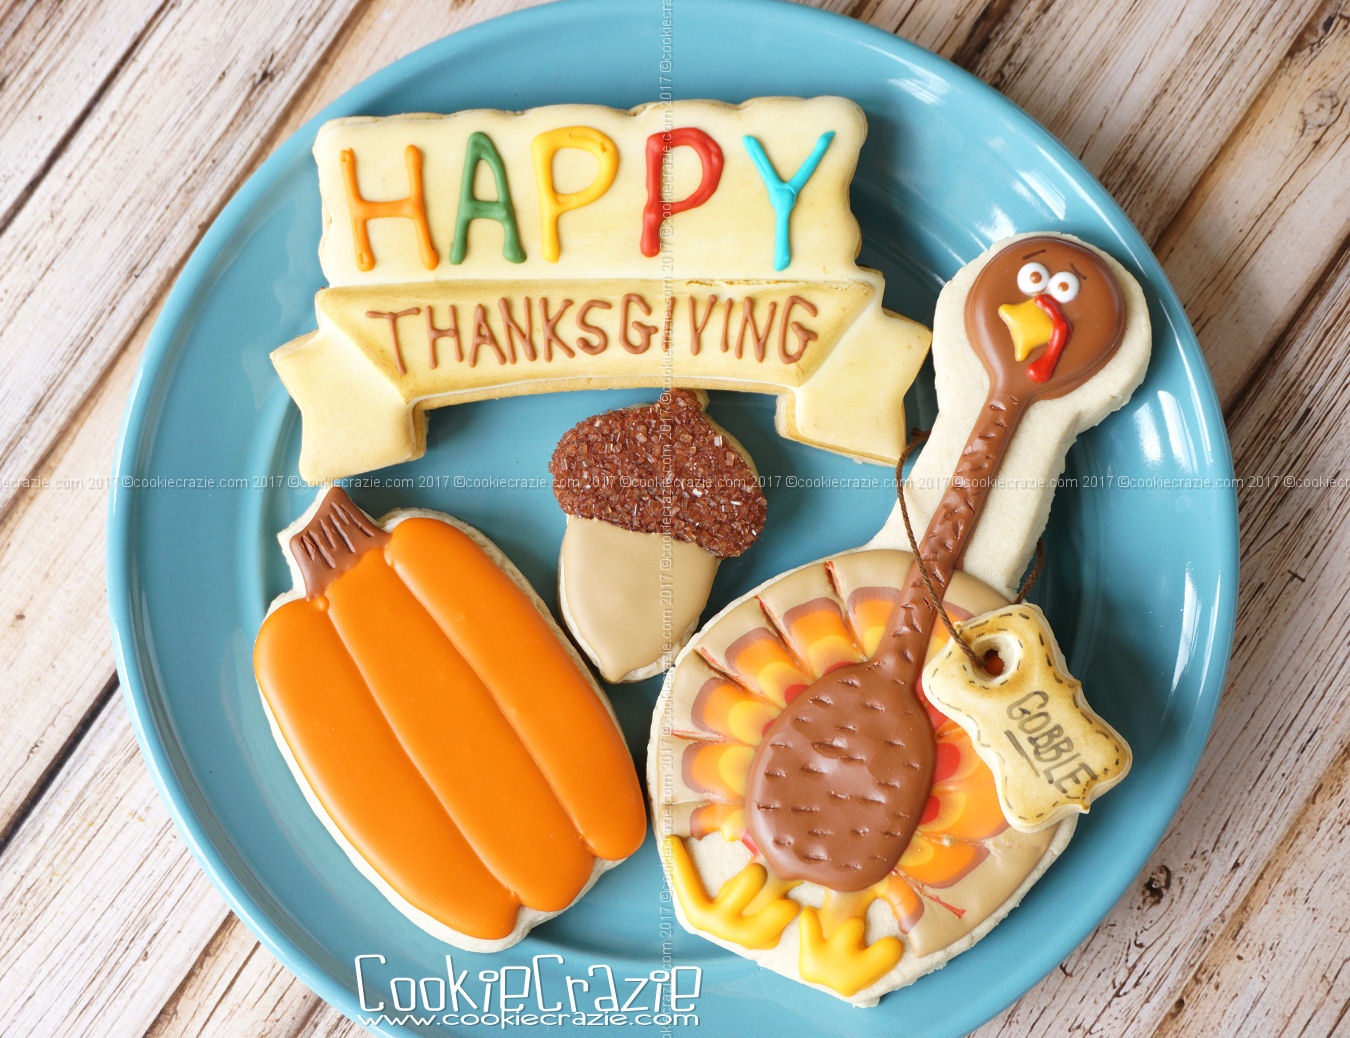 Happy Thanksgiving Banner Decorated Cookie YouTube Video found  HERE   Happy Plaque Cutter found  HERE .